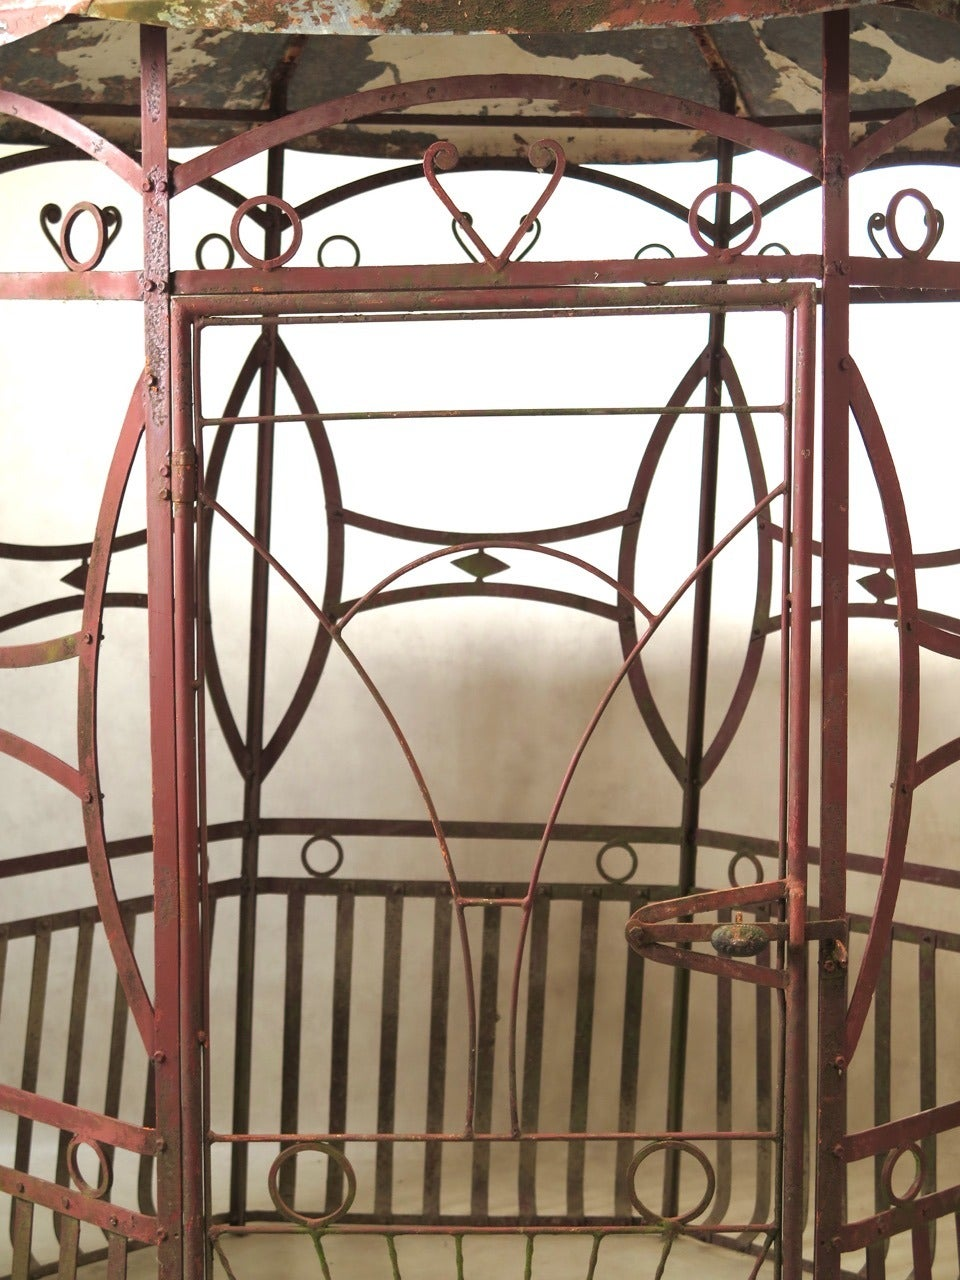 wrought iron art deco pergola france 1920s for sale at. Black Bedroom Furniture Sets. Home Design Ideas